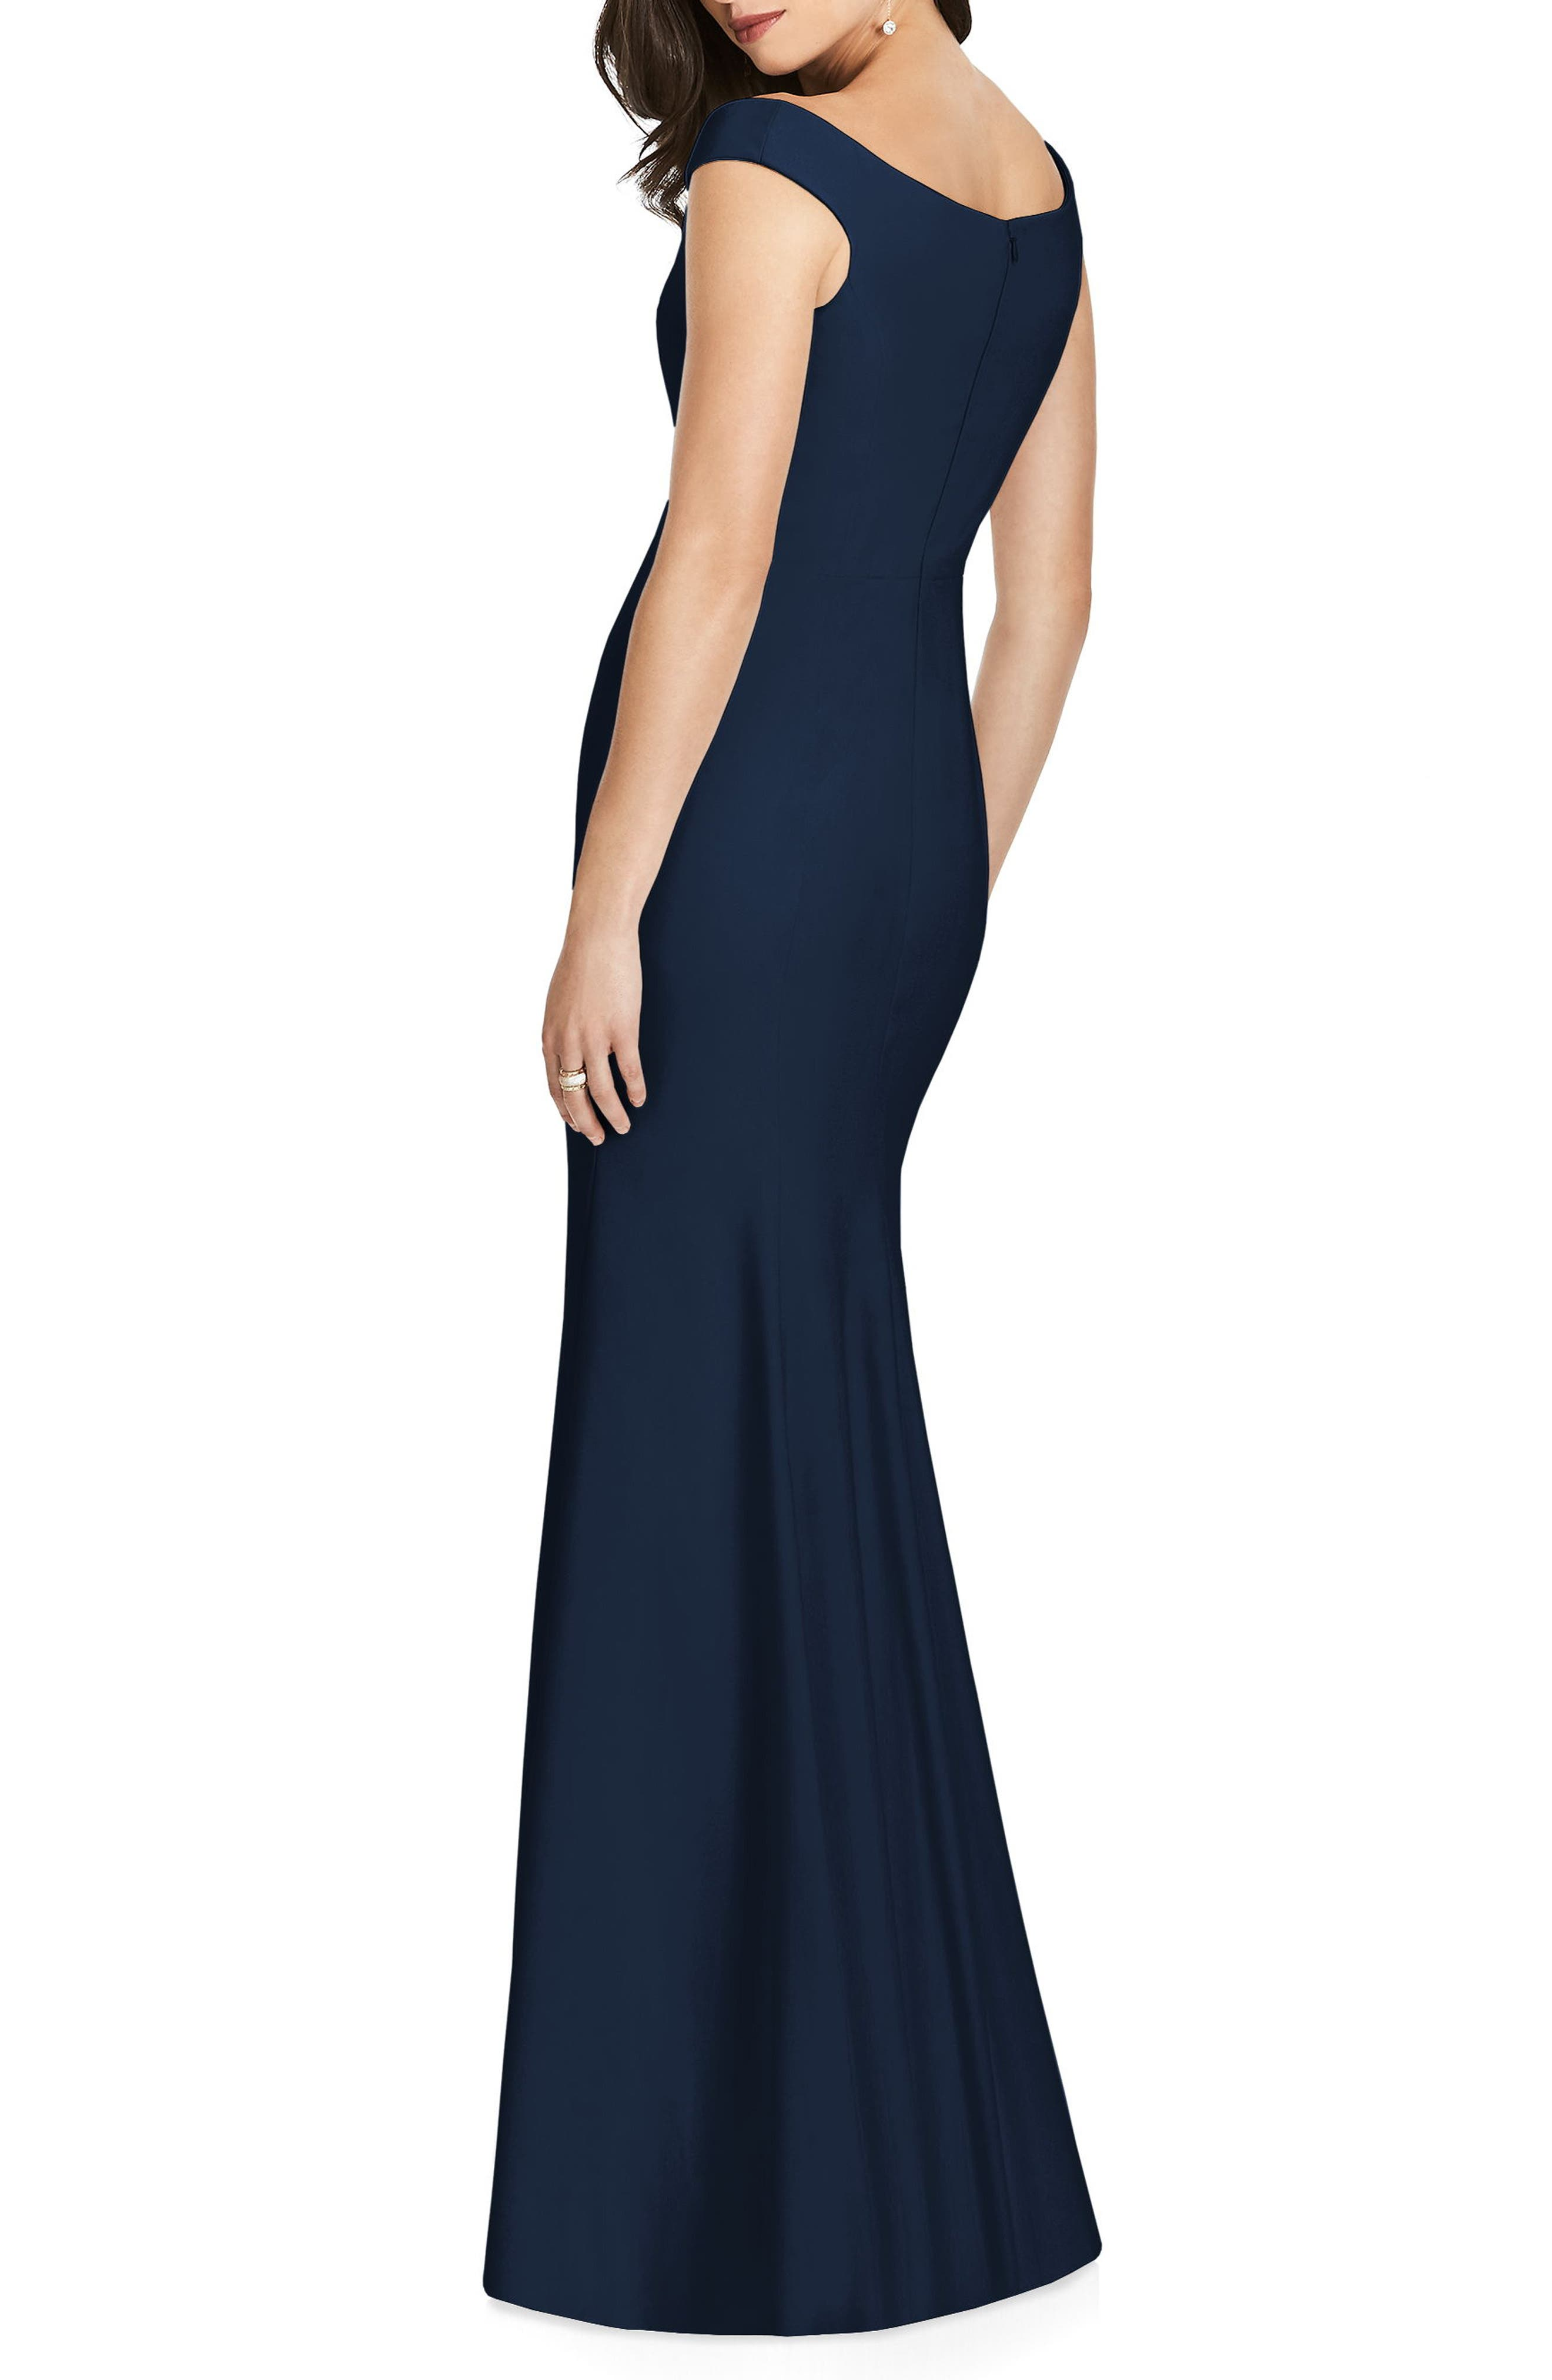 DESSY COLLECTION, Off the Shoulder Crepe Gown, Alternate thumbnail 2, color, MIDNIGHT